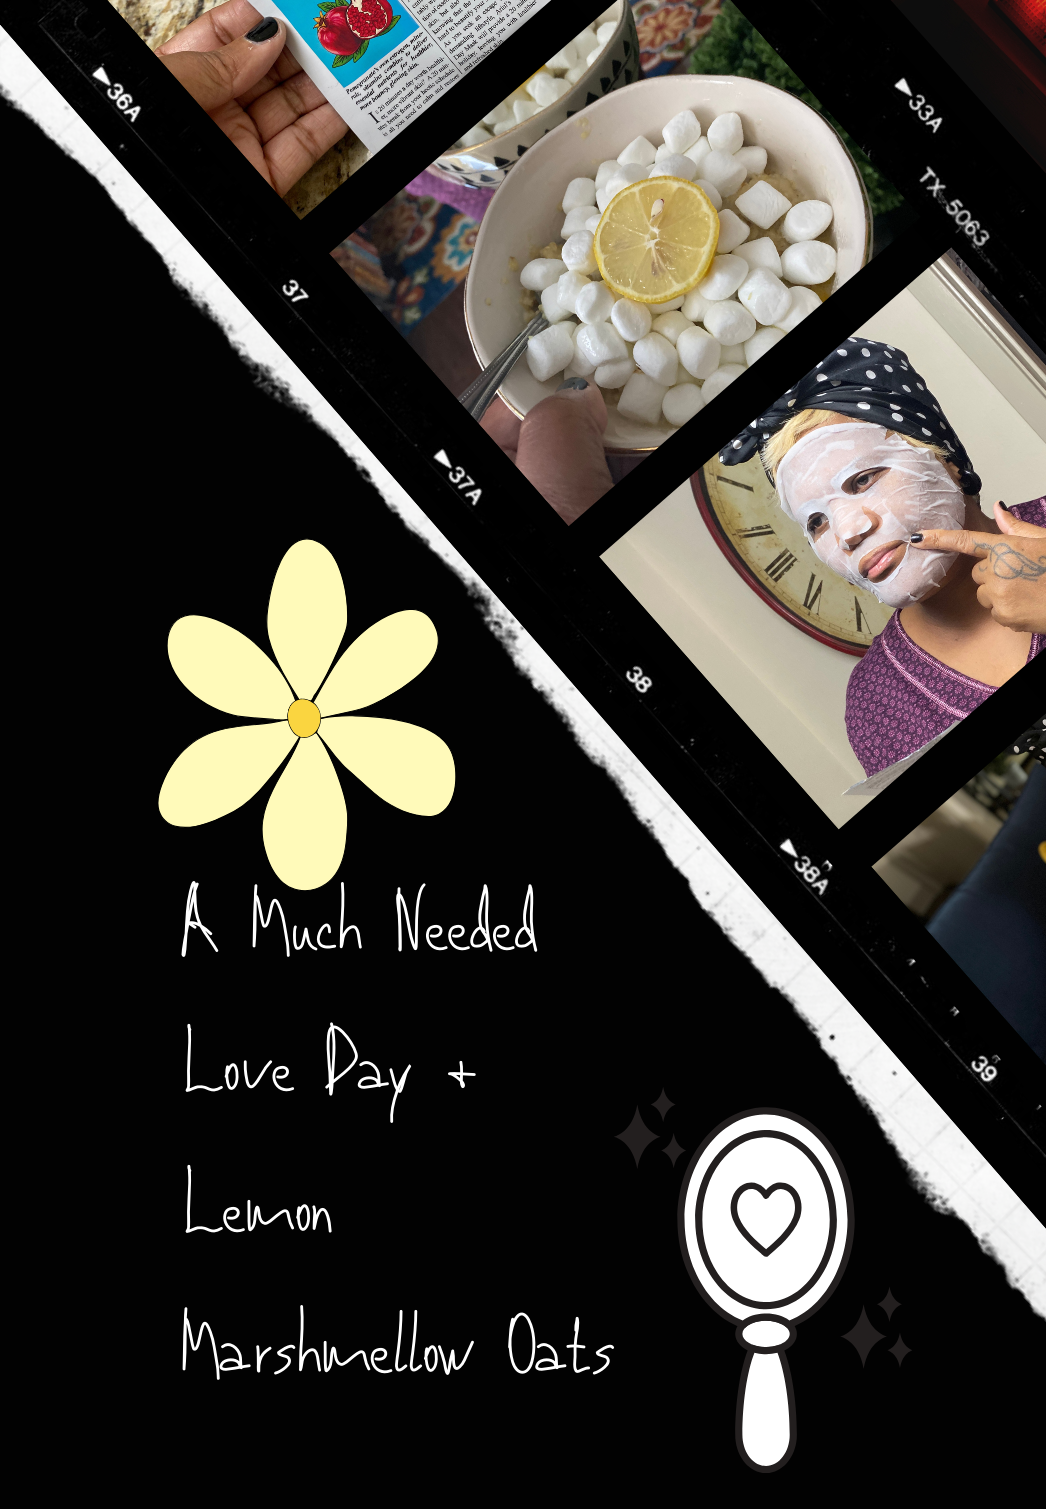 A Much Needed Love Day + Lemon Marshmellow Oats Recipe